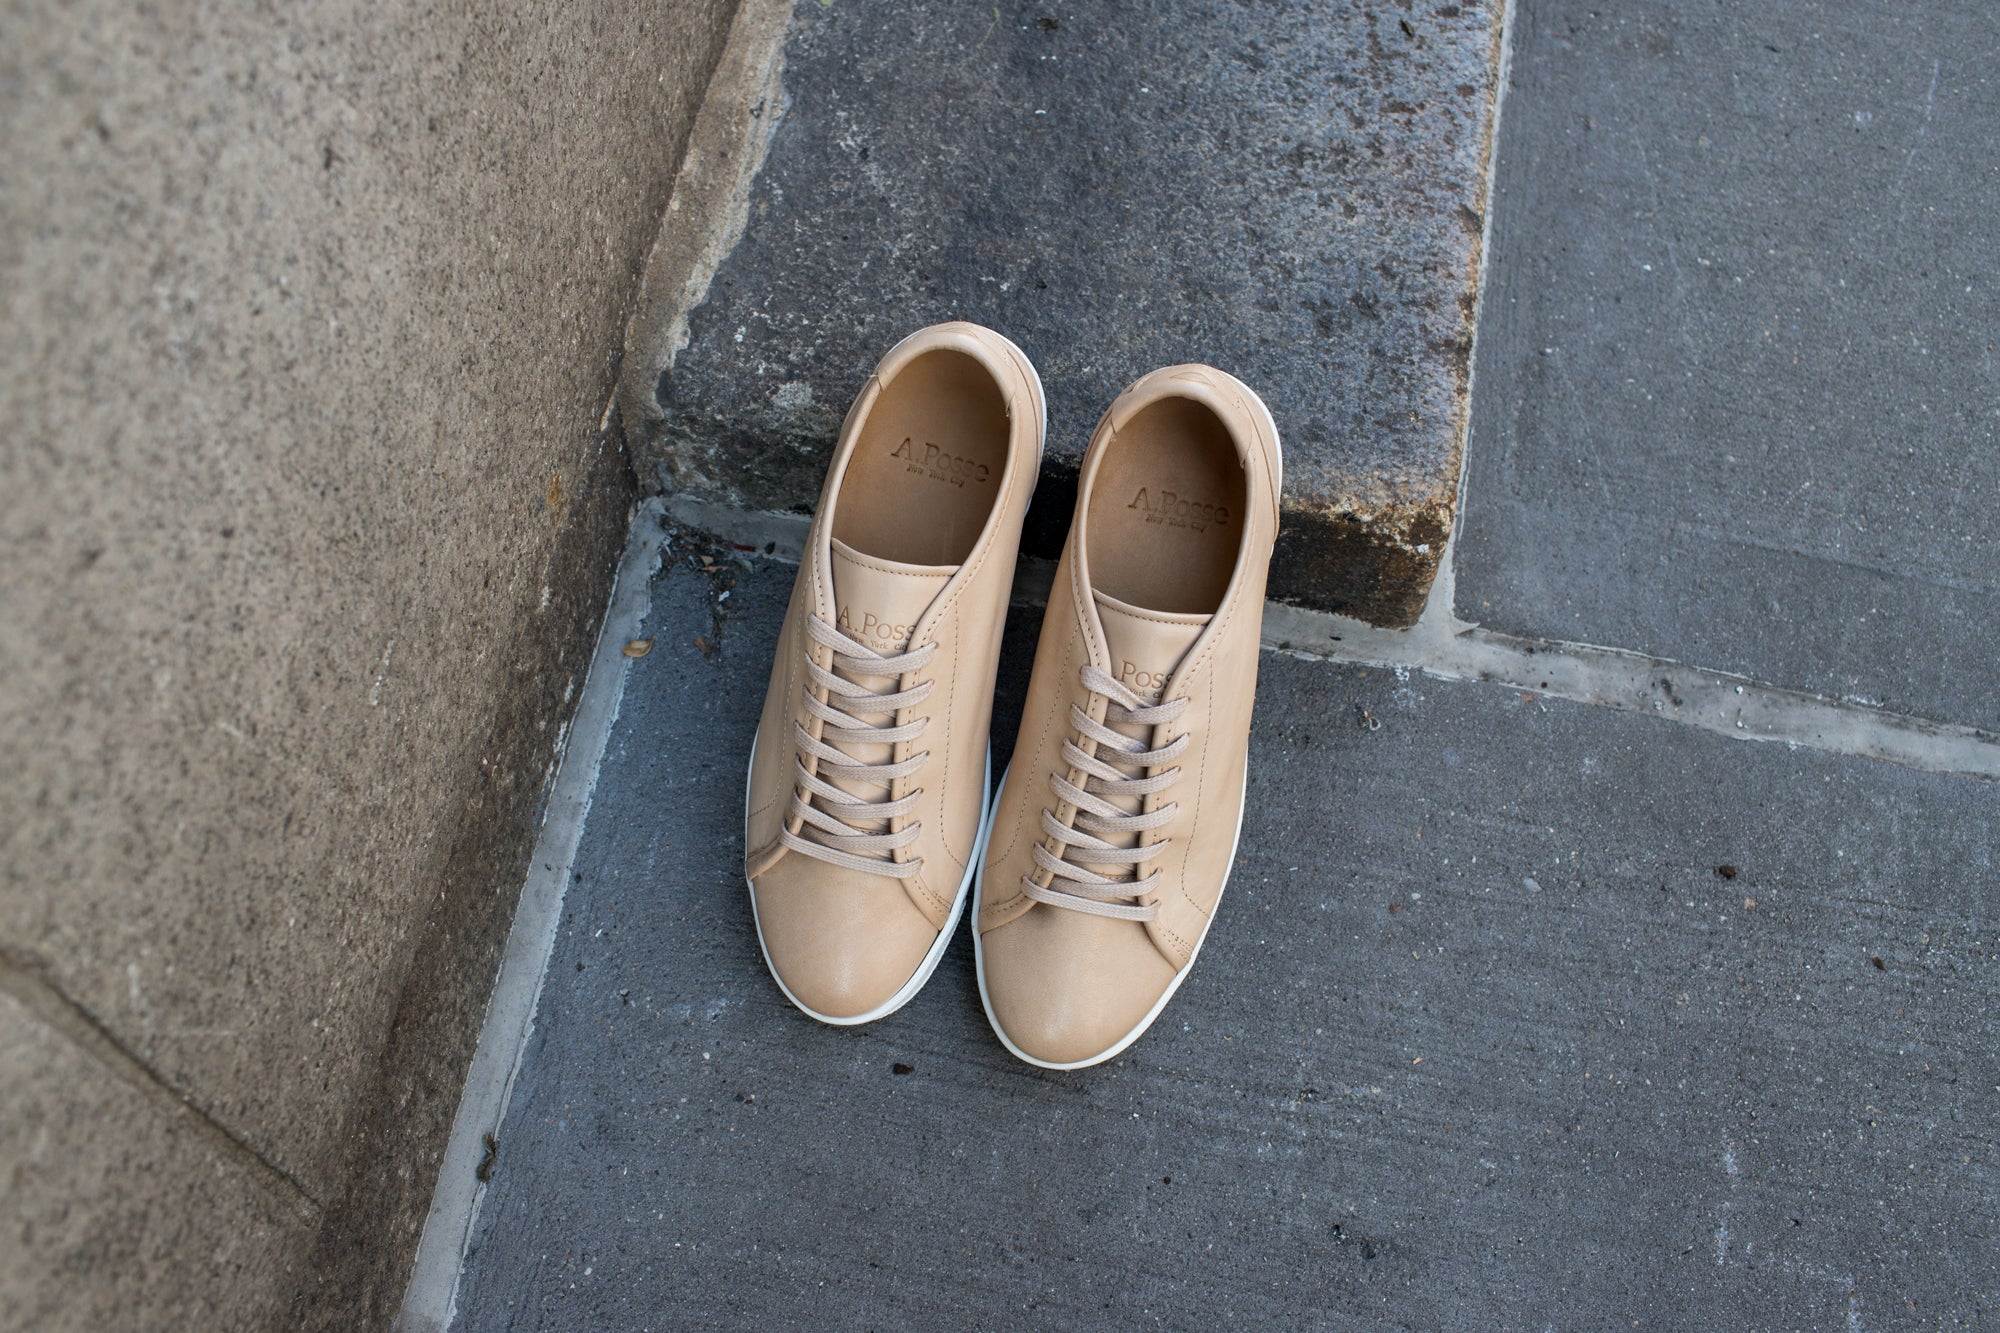 A.Posse Rivington (nude) dressy clean cream off-white tan leather luxury sneaker low top NYC Kith inspo